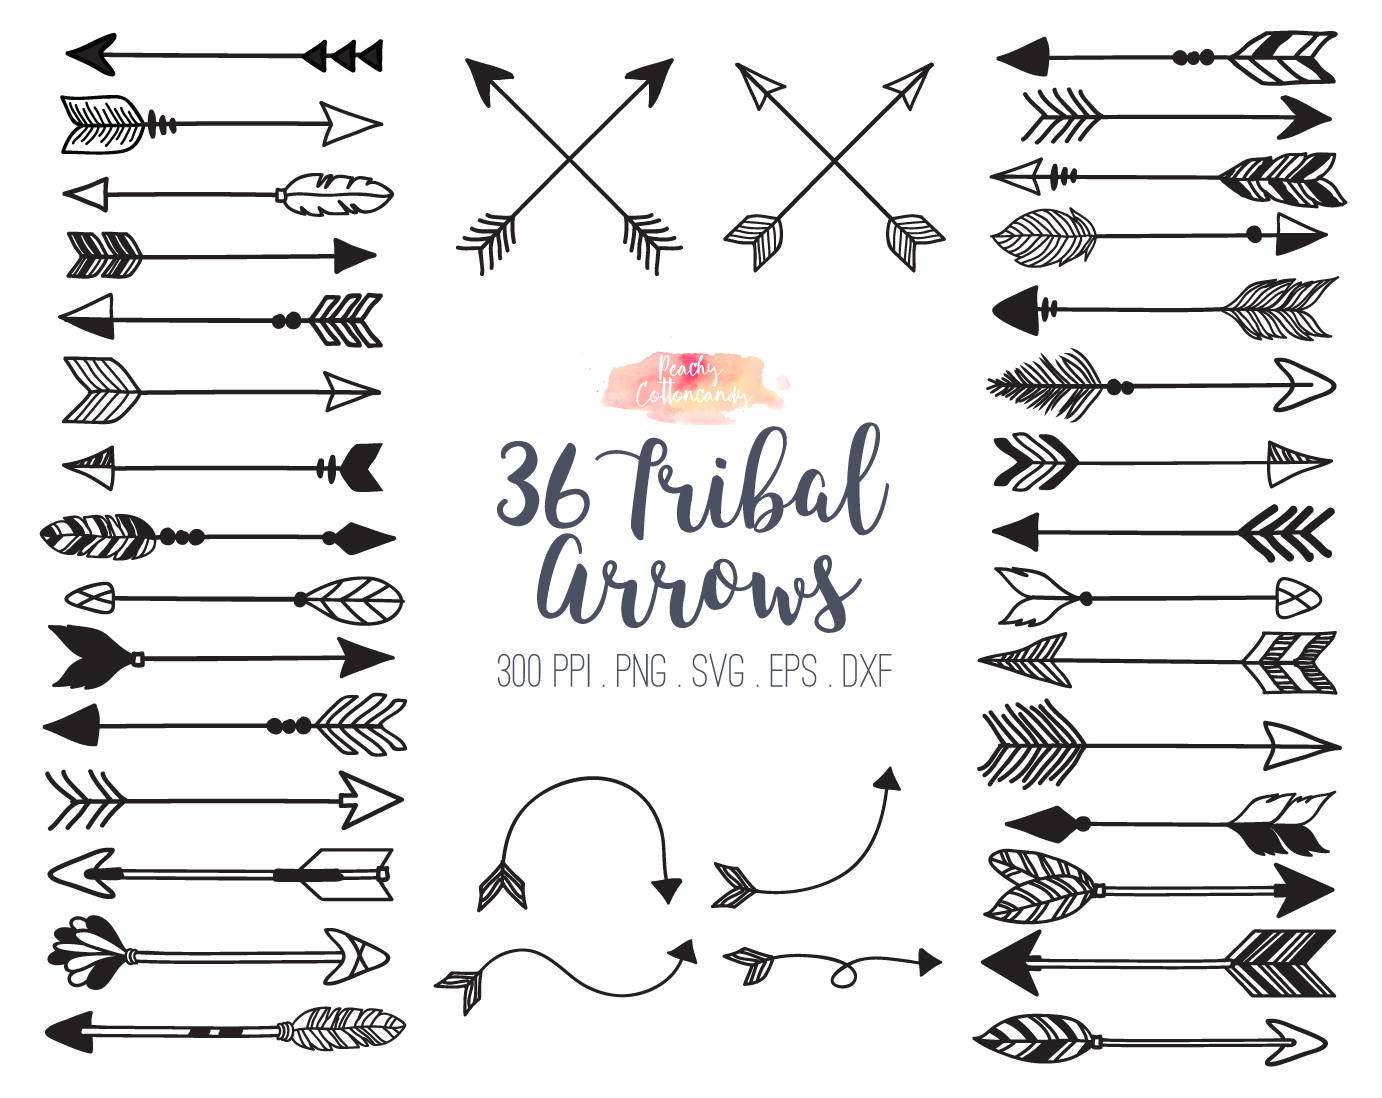 Arrows clipart calligraphy. Buy get free tribal